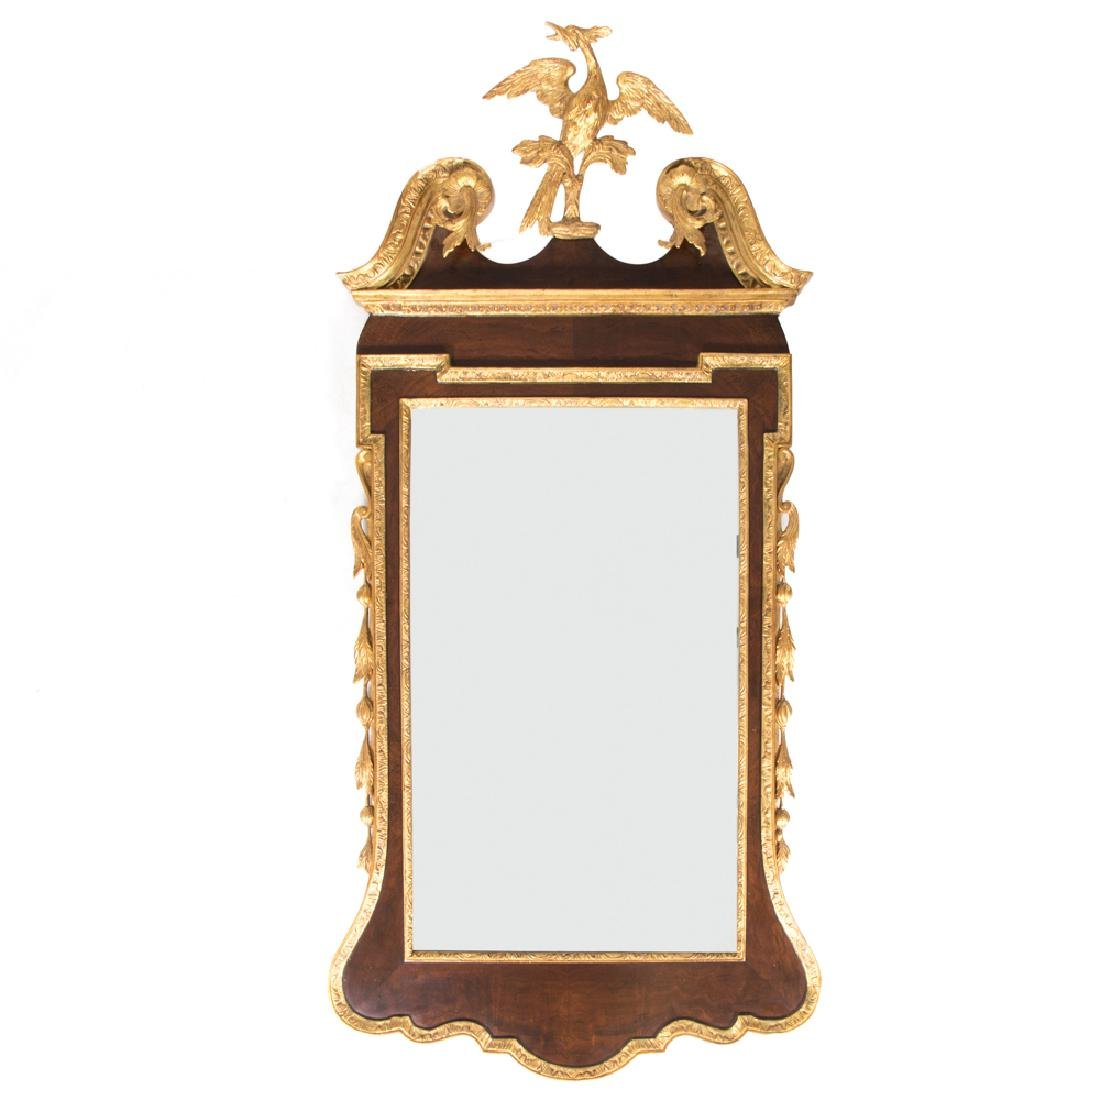 A Chippendale Style Gilt Framed Bevel Mirror, 20th